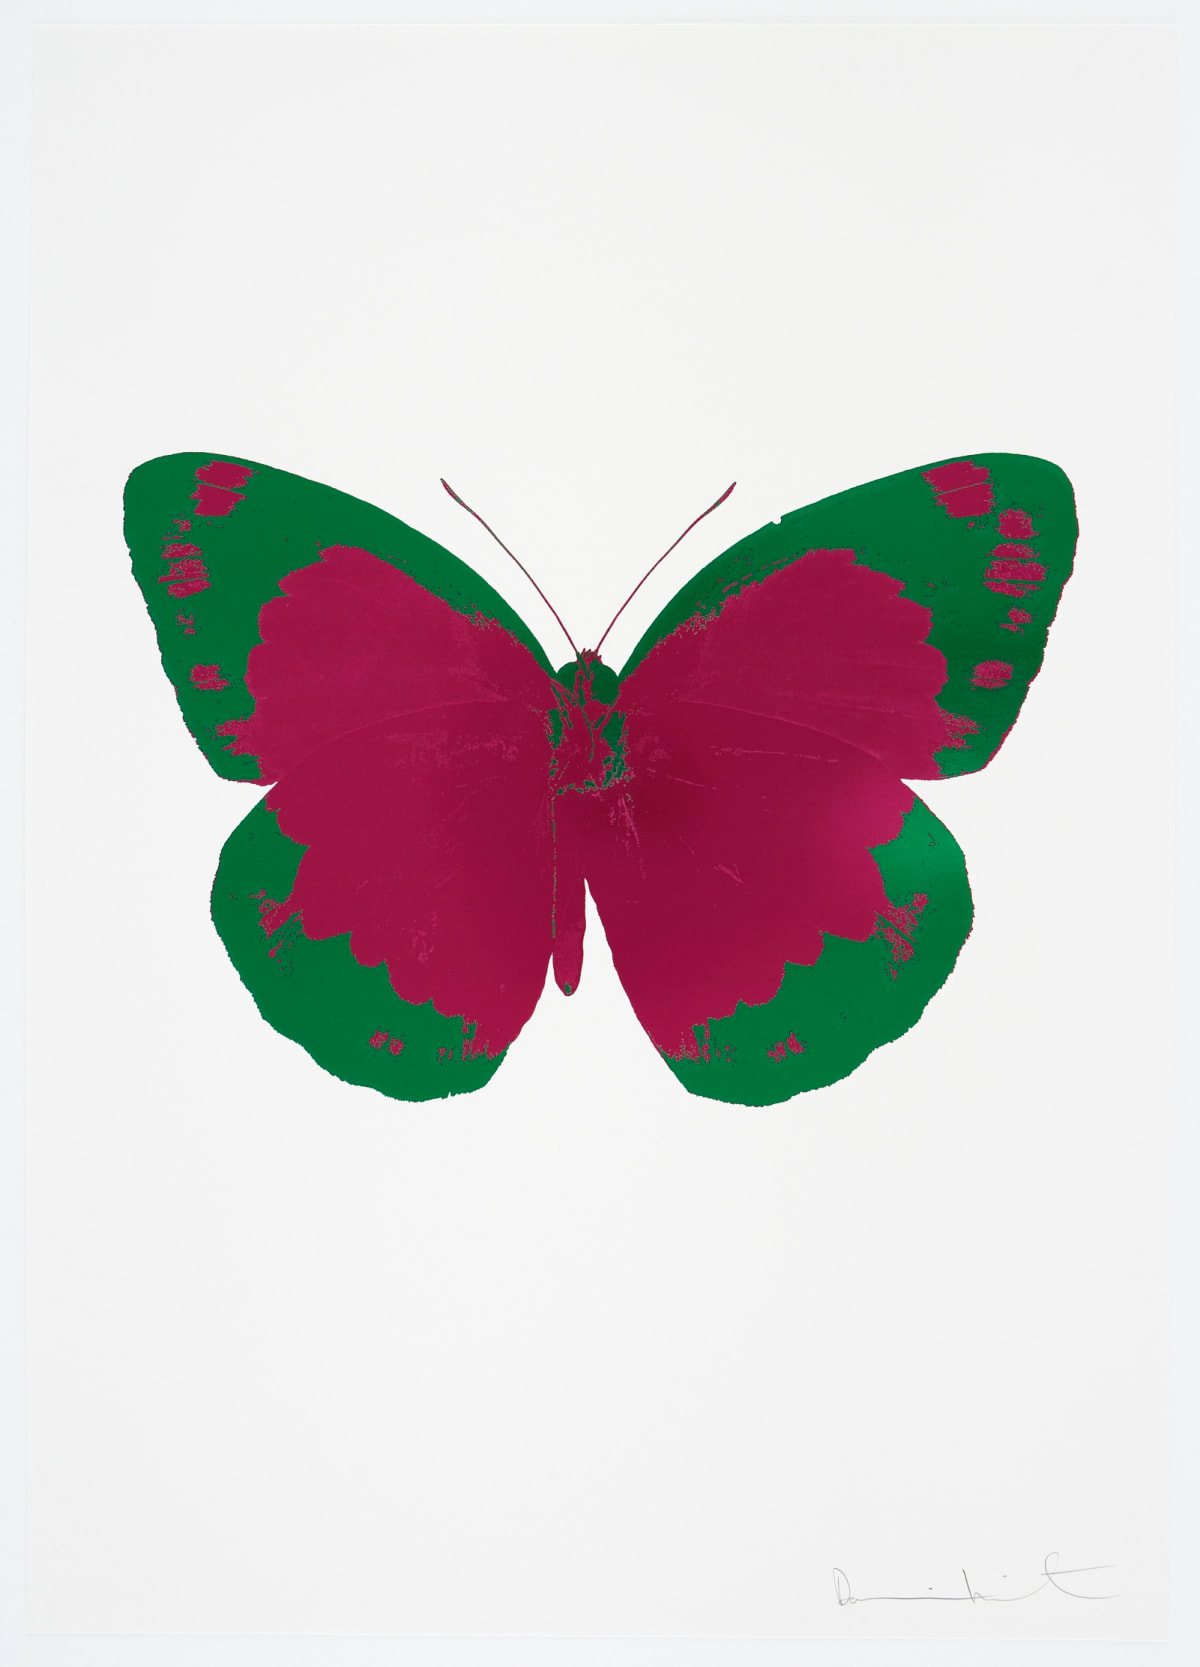 Damien Hirst The Souls II - Fuchsia Pink/Emerald Green/Blind Impression, 2010 2 colour foil block on 300gsm Arches 88 archival paper. Signed and numbered. Published by Paul Stolper and Other Criteria 72 x 51cm OC7833 / 658-16 Edition of 15